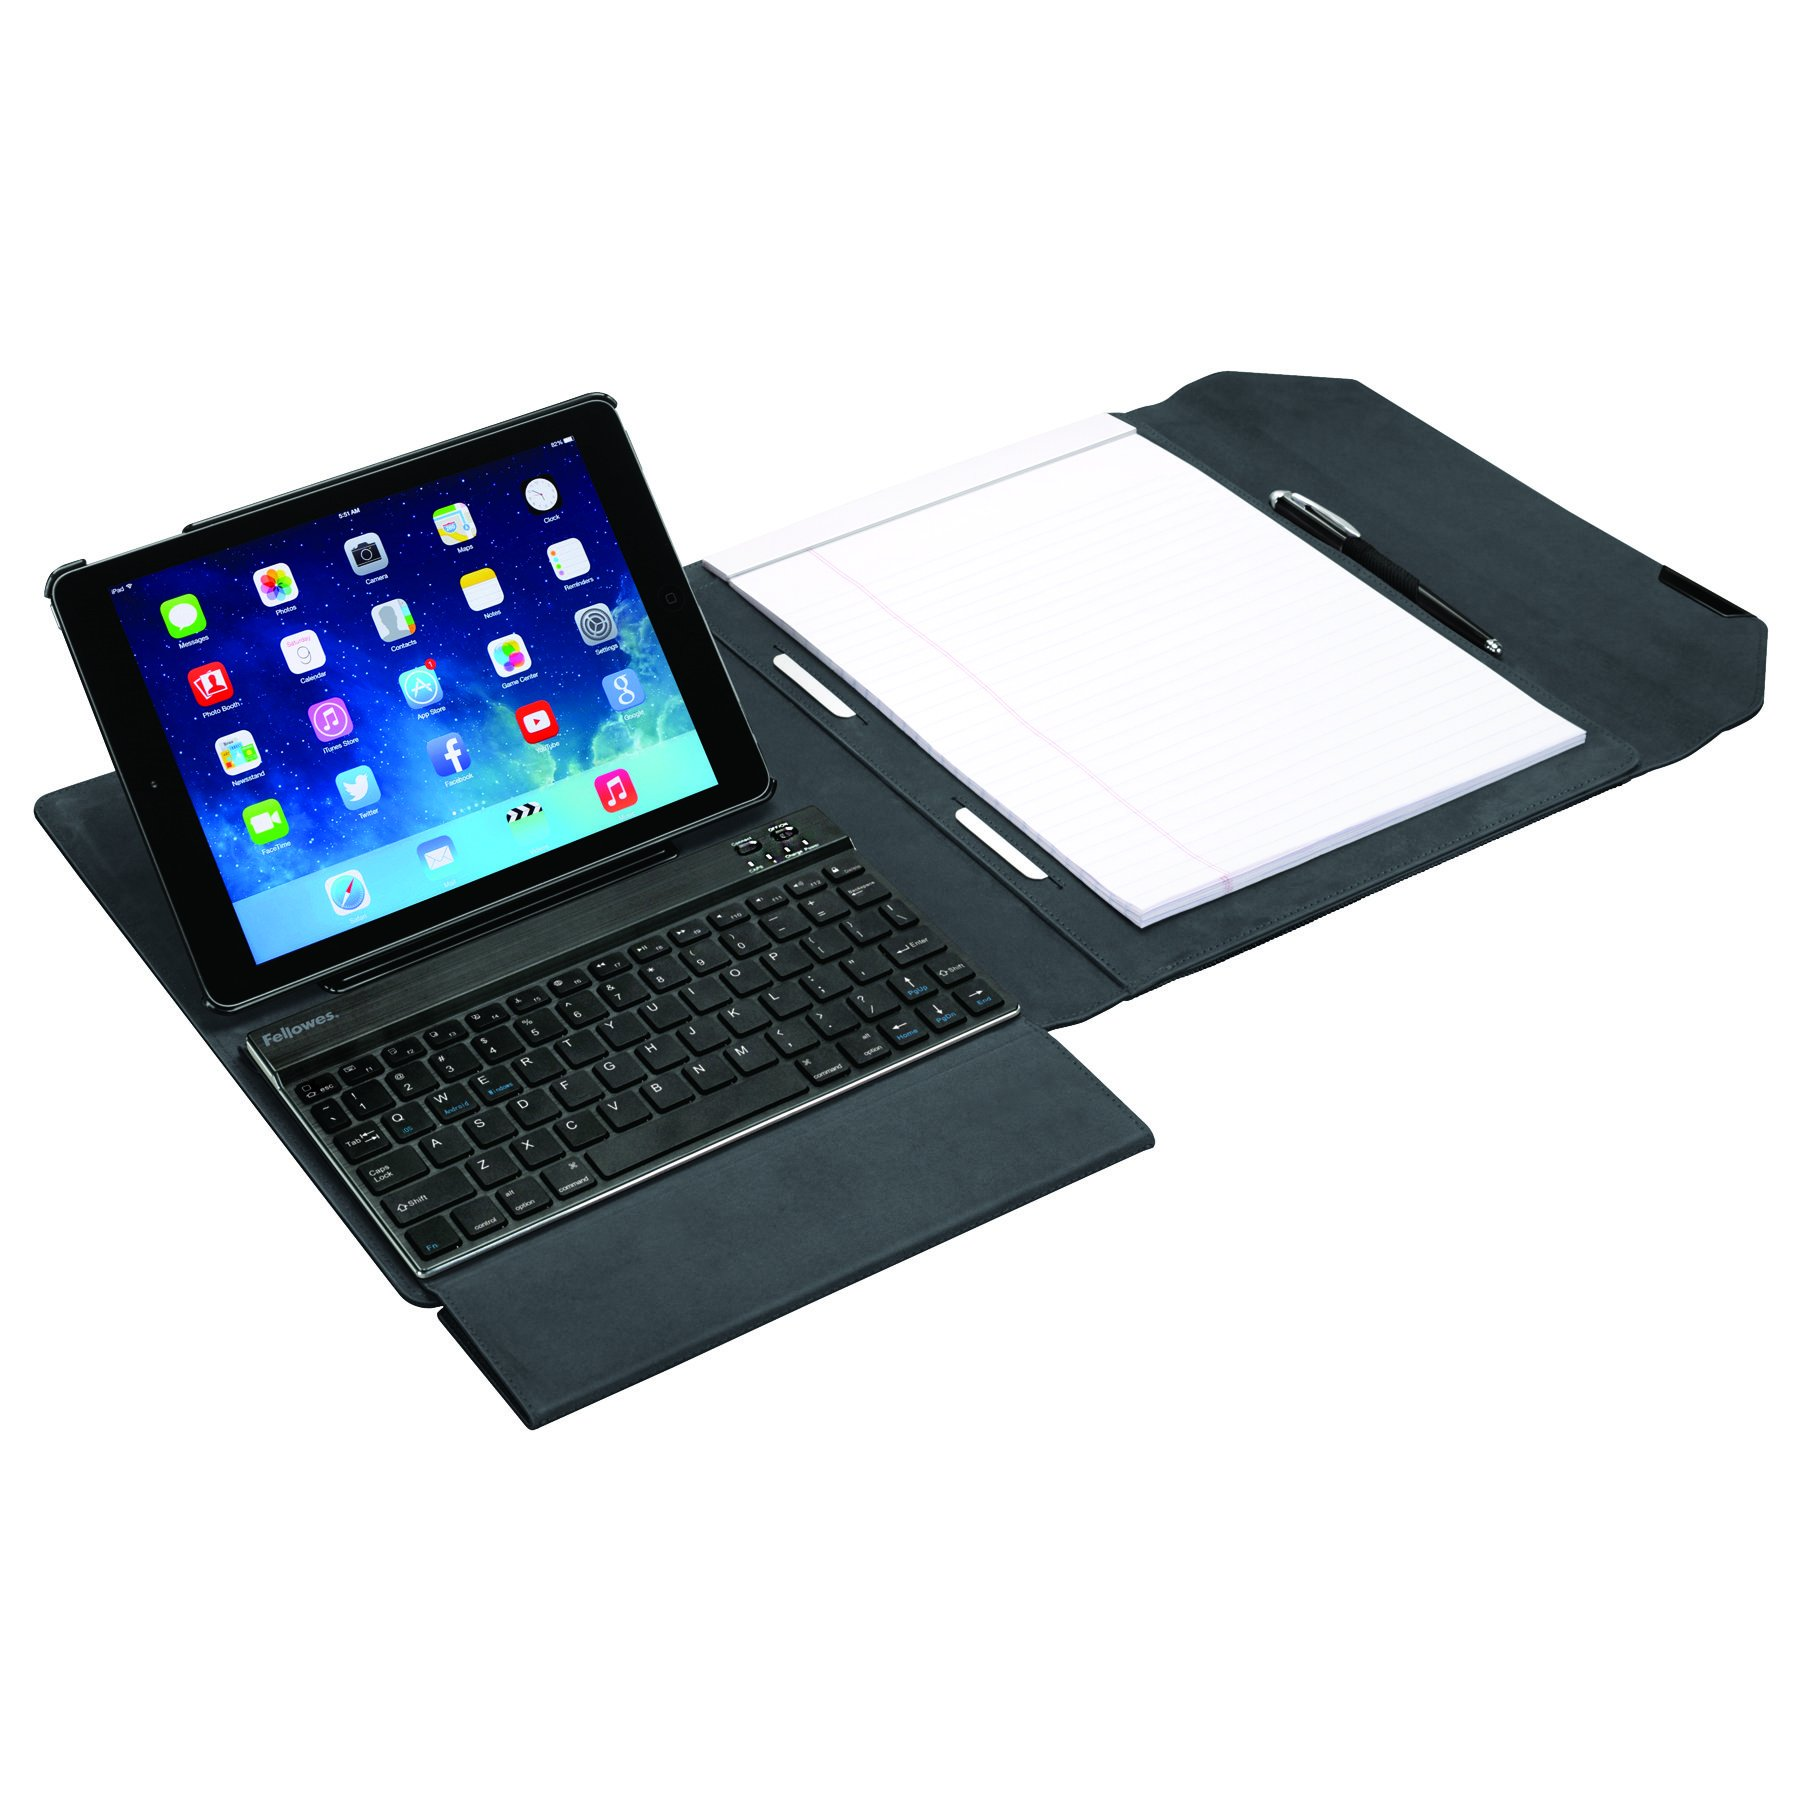 Fellowes MobilePro Series Executive Tablet Case Folio with Keyboard for iPad Air/Air 2 (8200901)